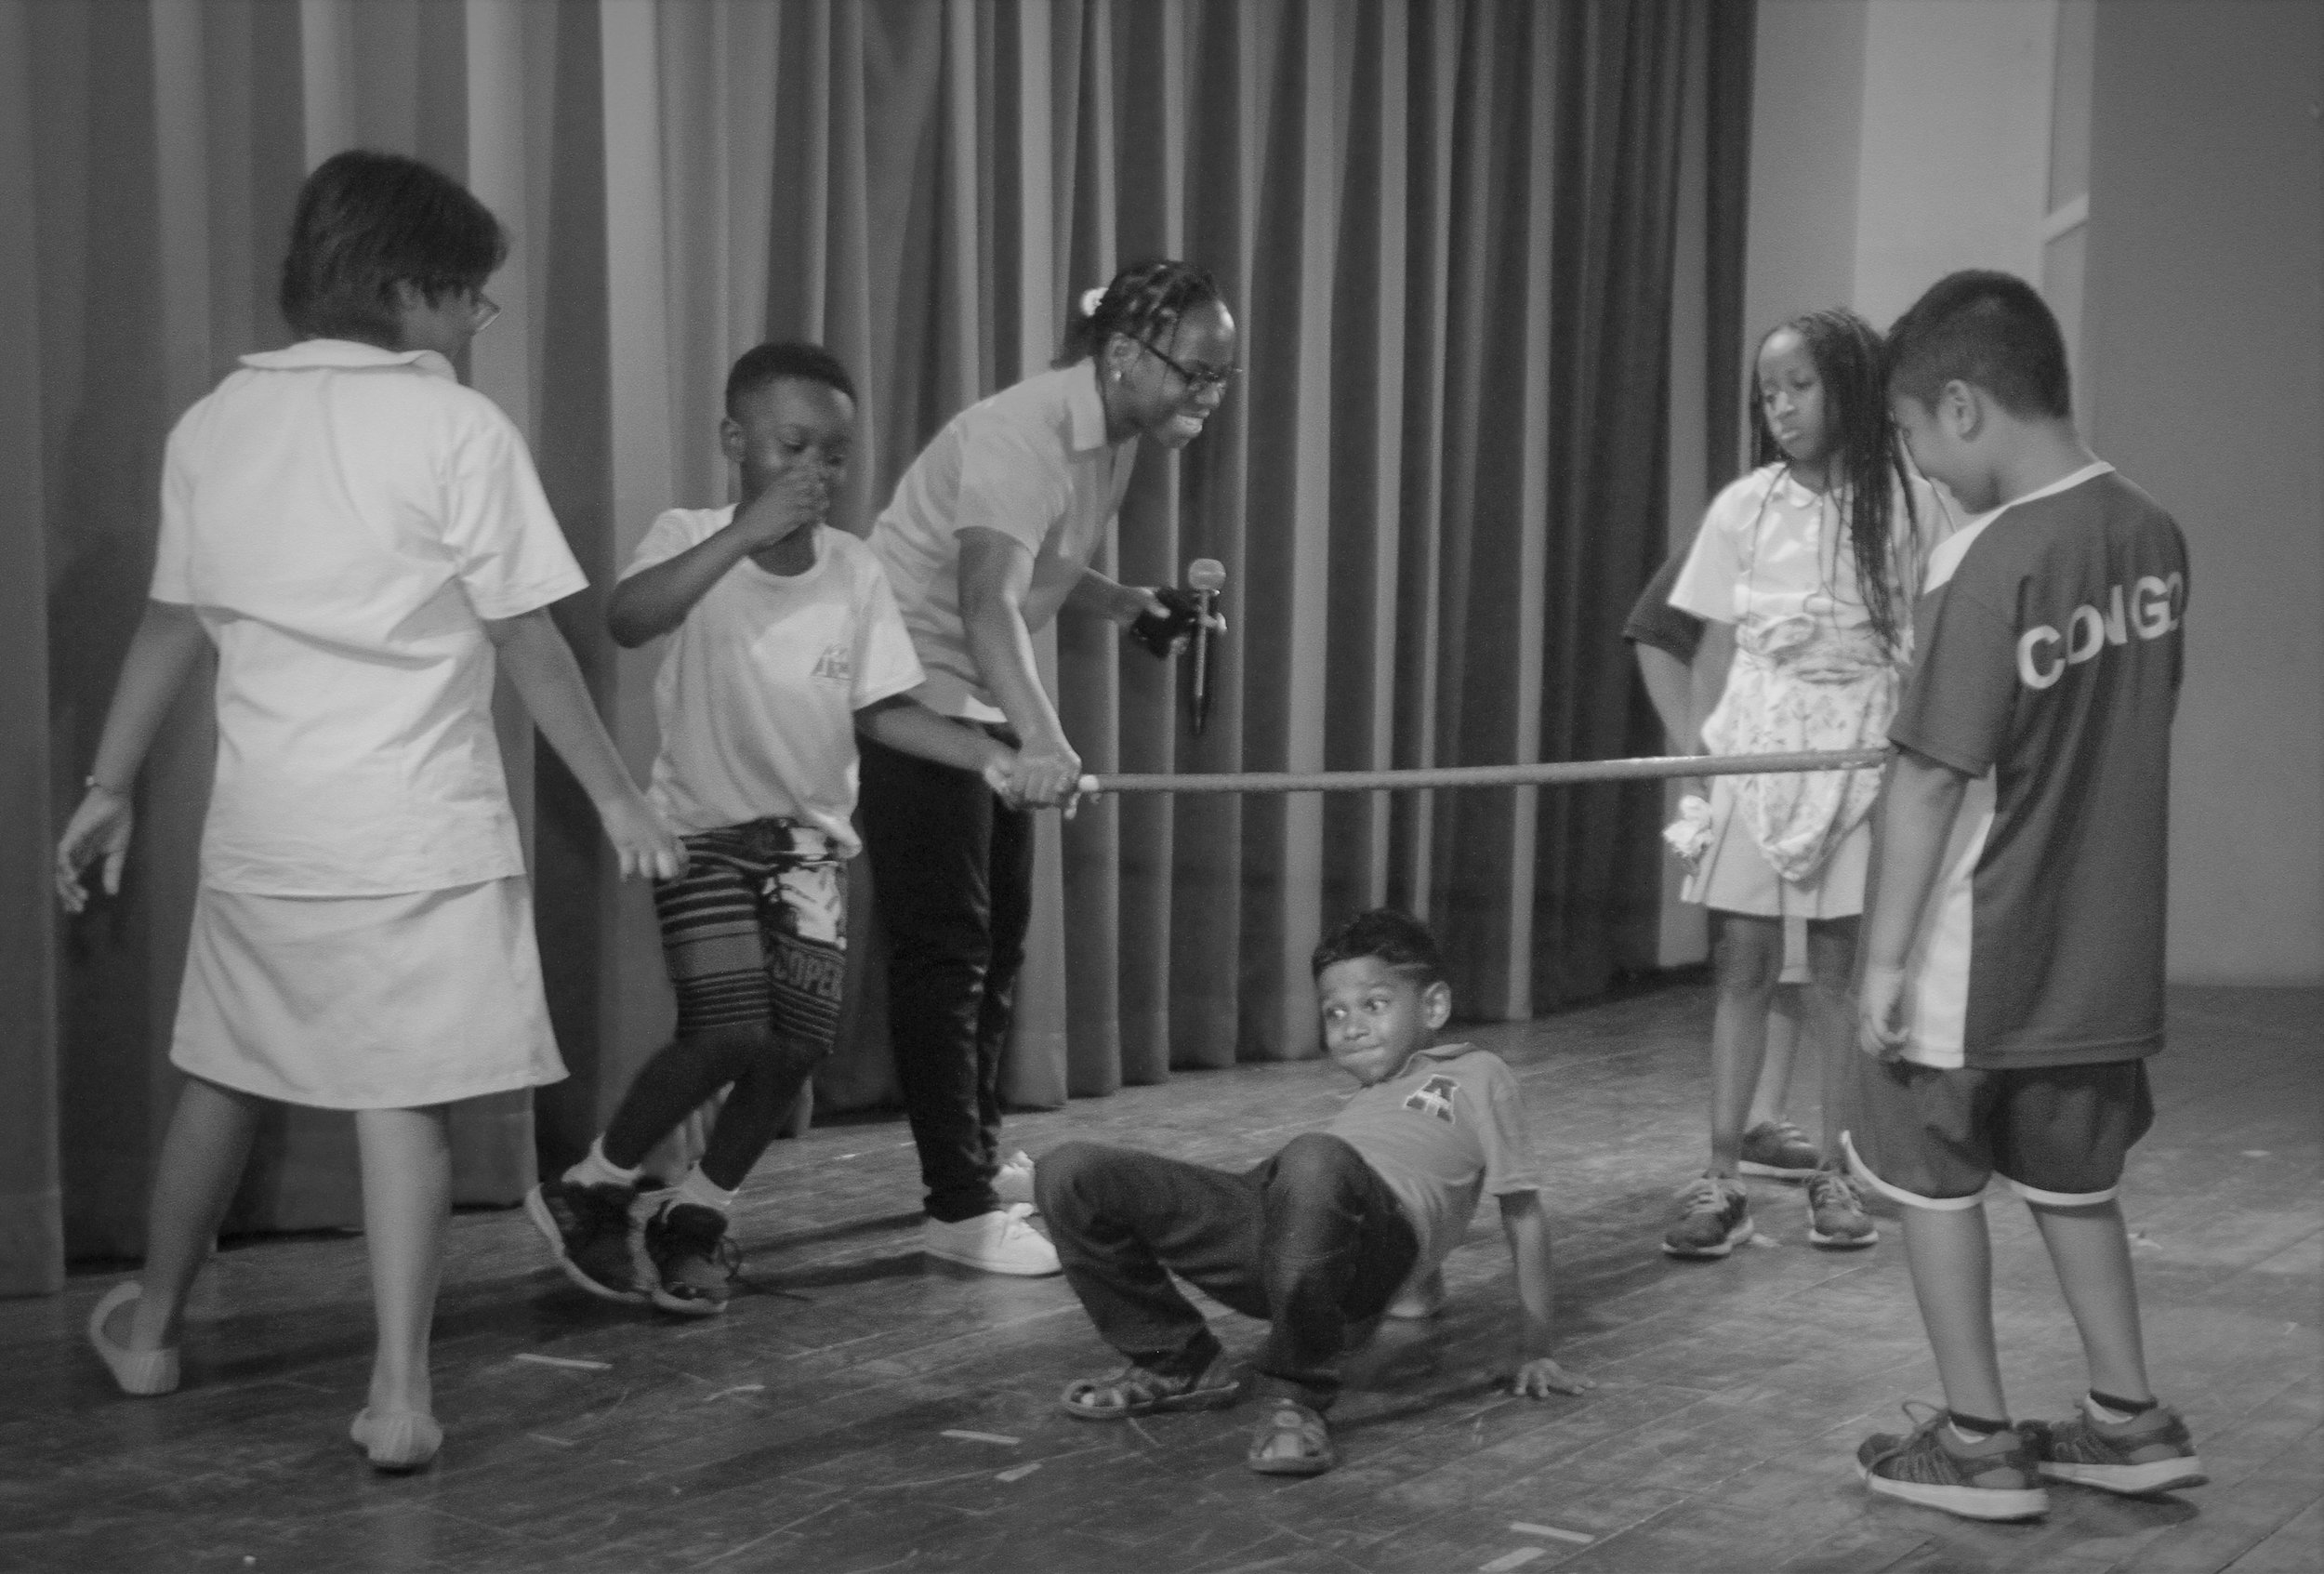 Birthday challenge, LIMBO! How LOW can you GO!?!?